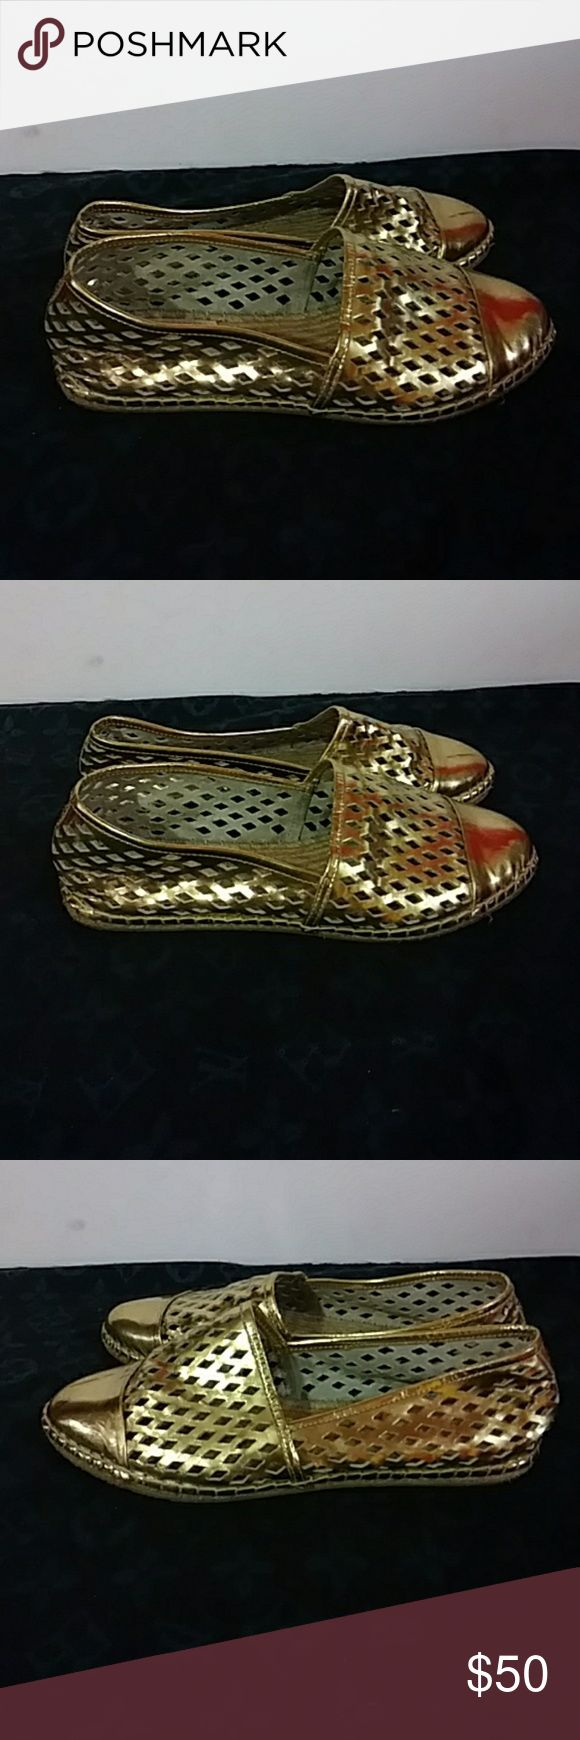 Loeffler Randall gold espadrilles They are in great condition see pictures please .... Gorgeous Shoes Espadrilles